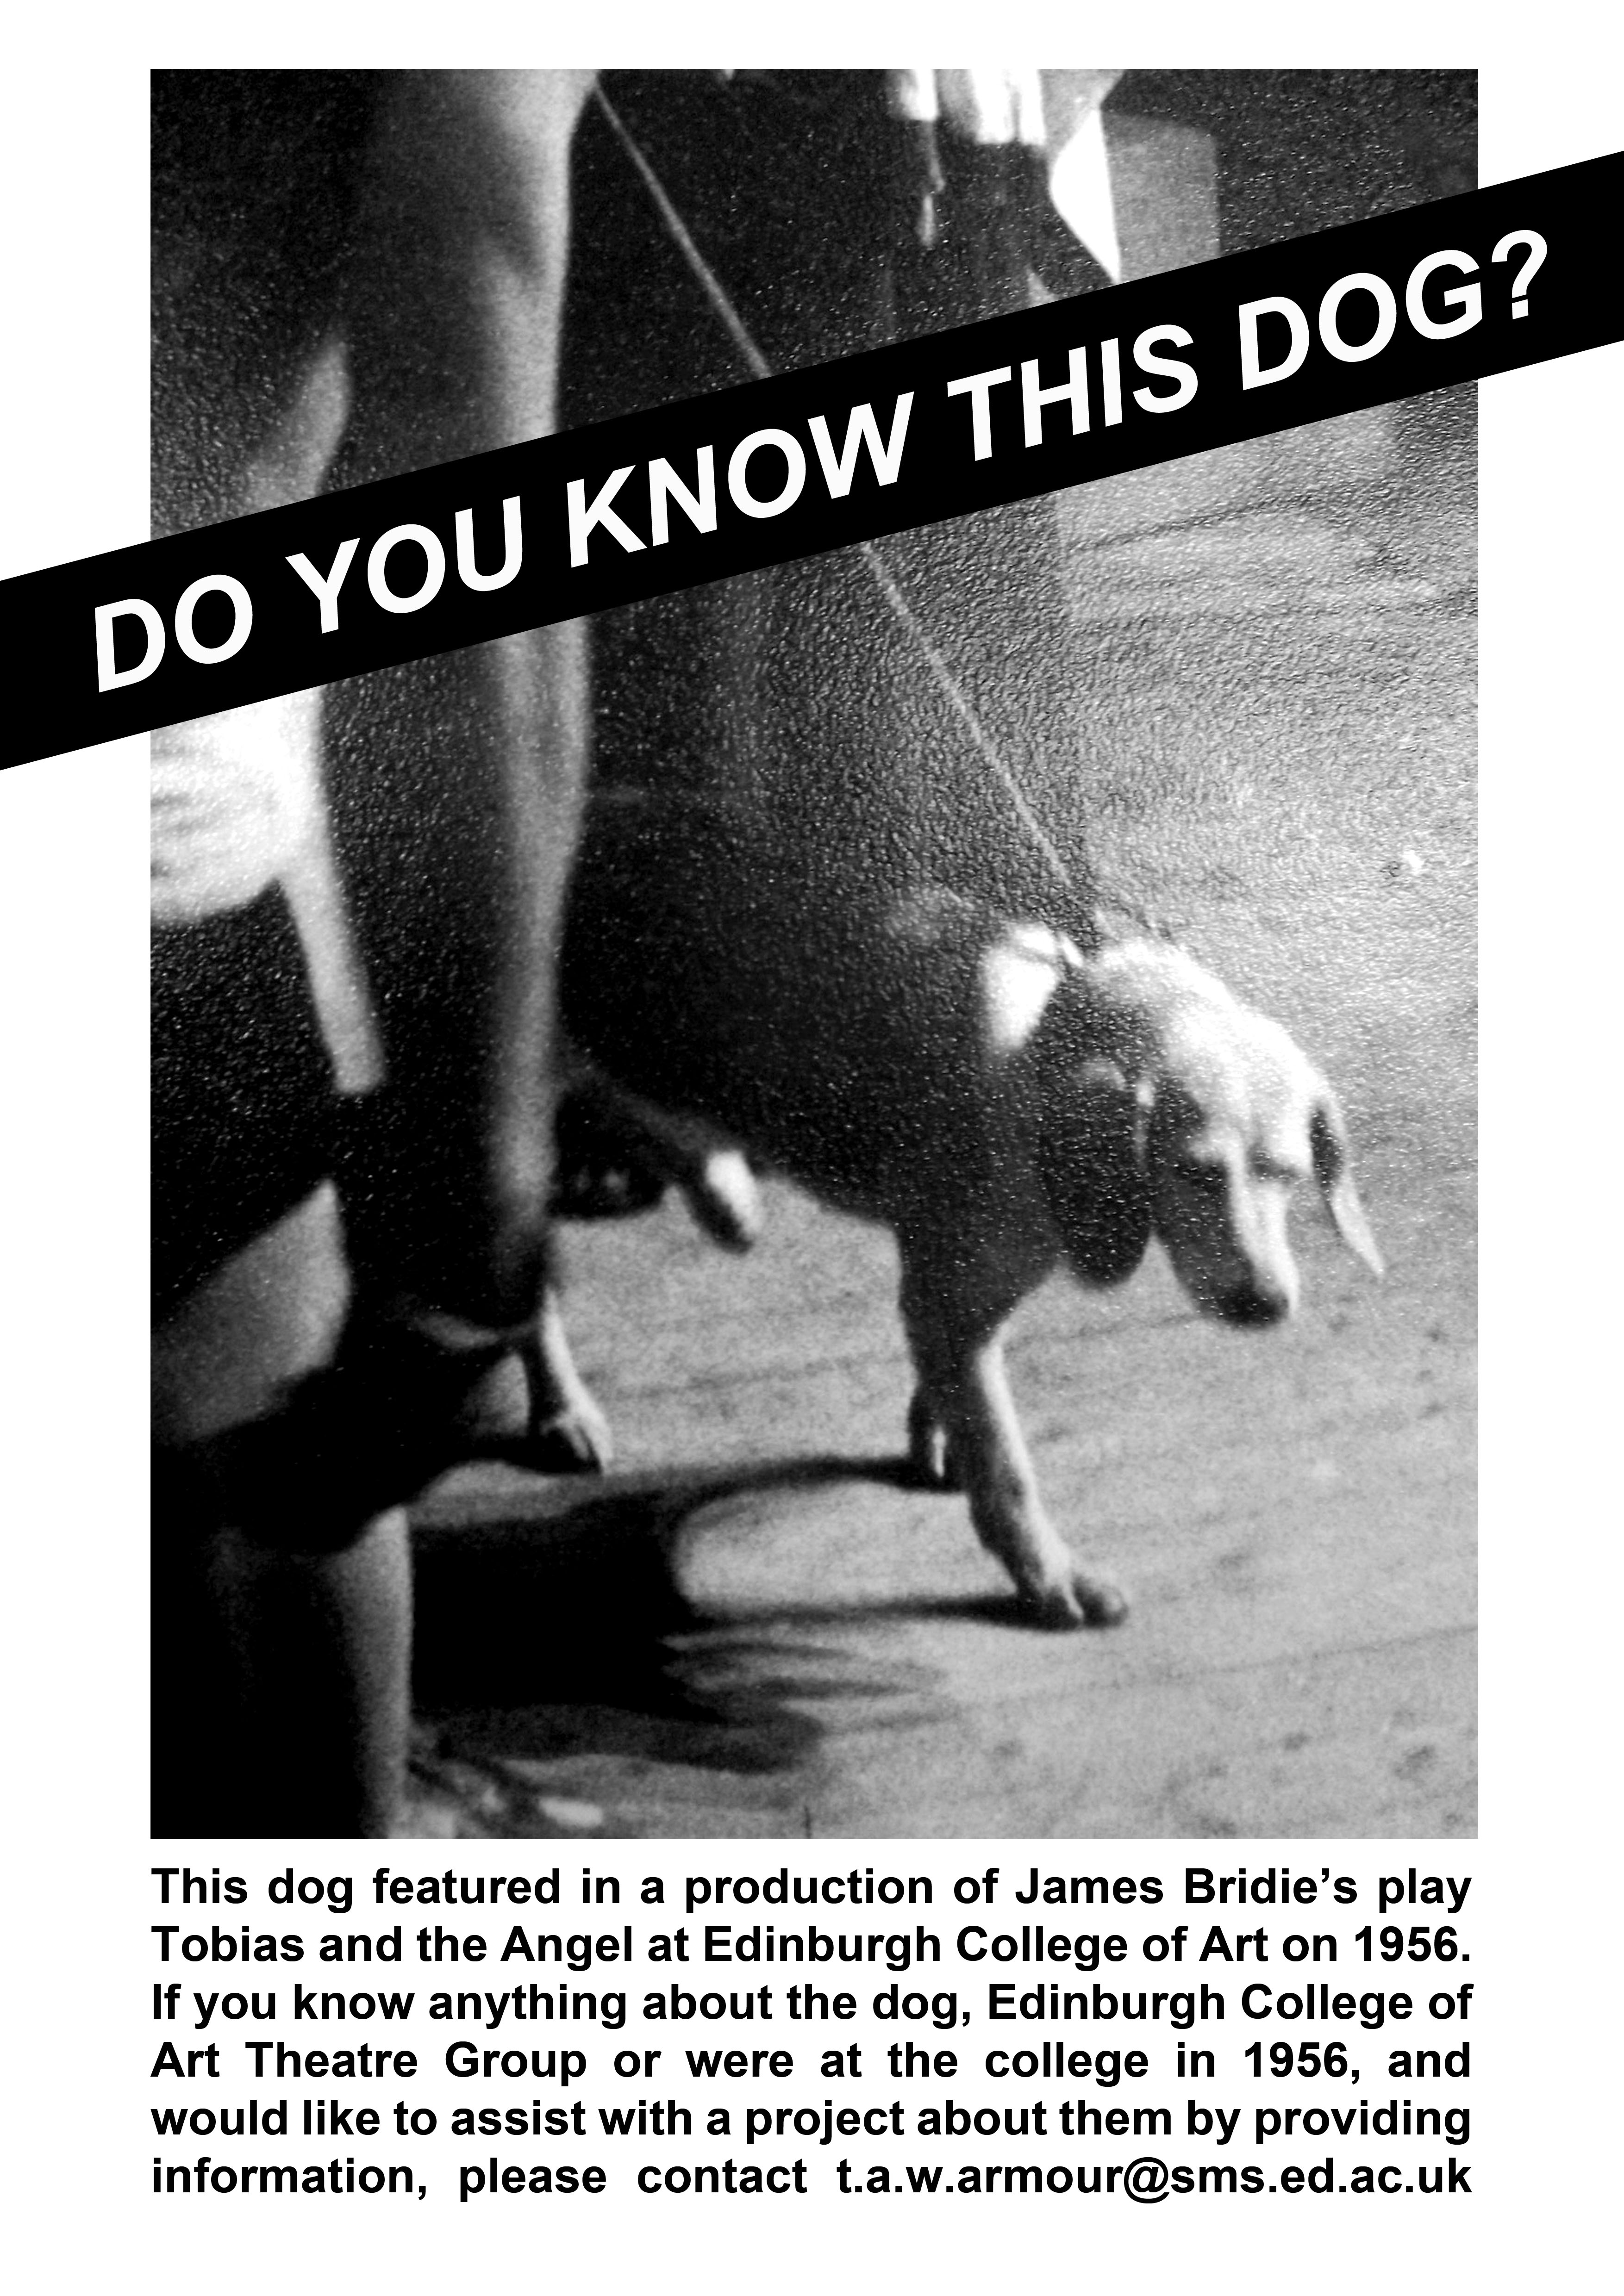 Do you know this dog?